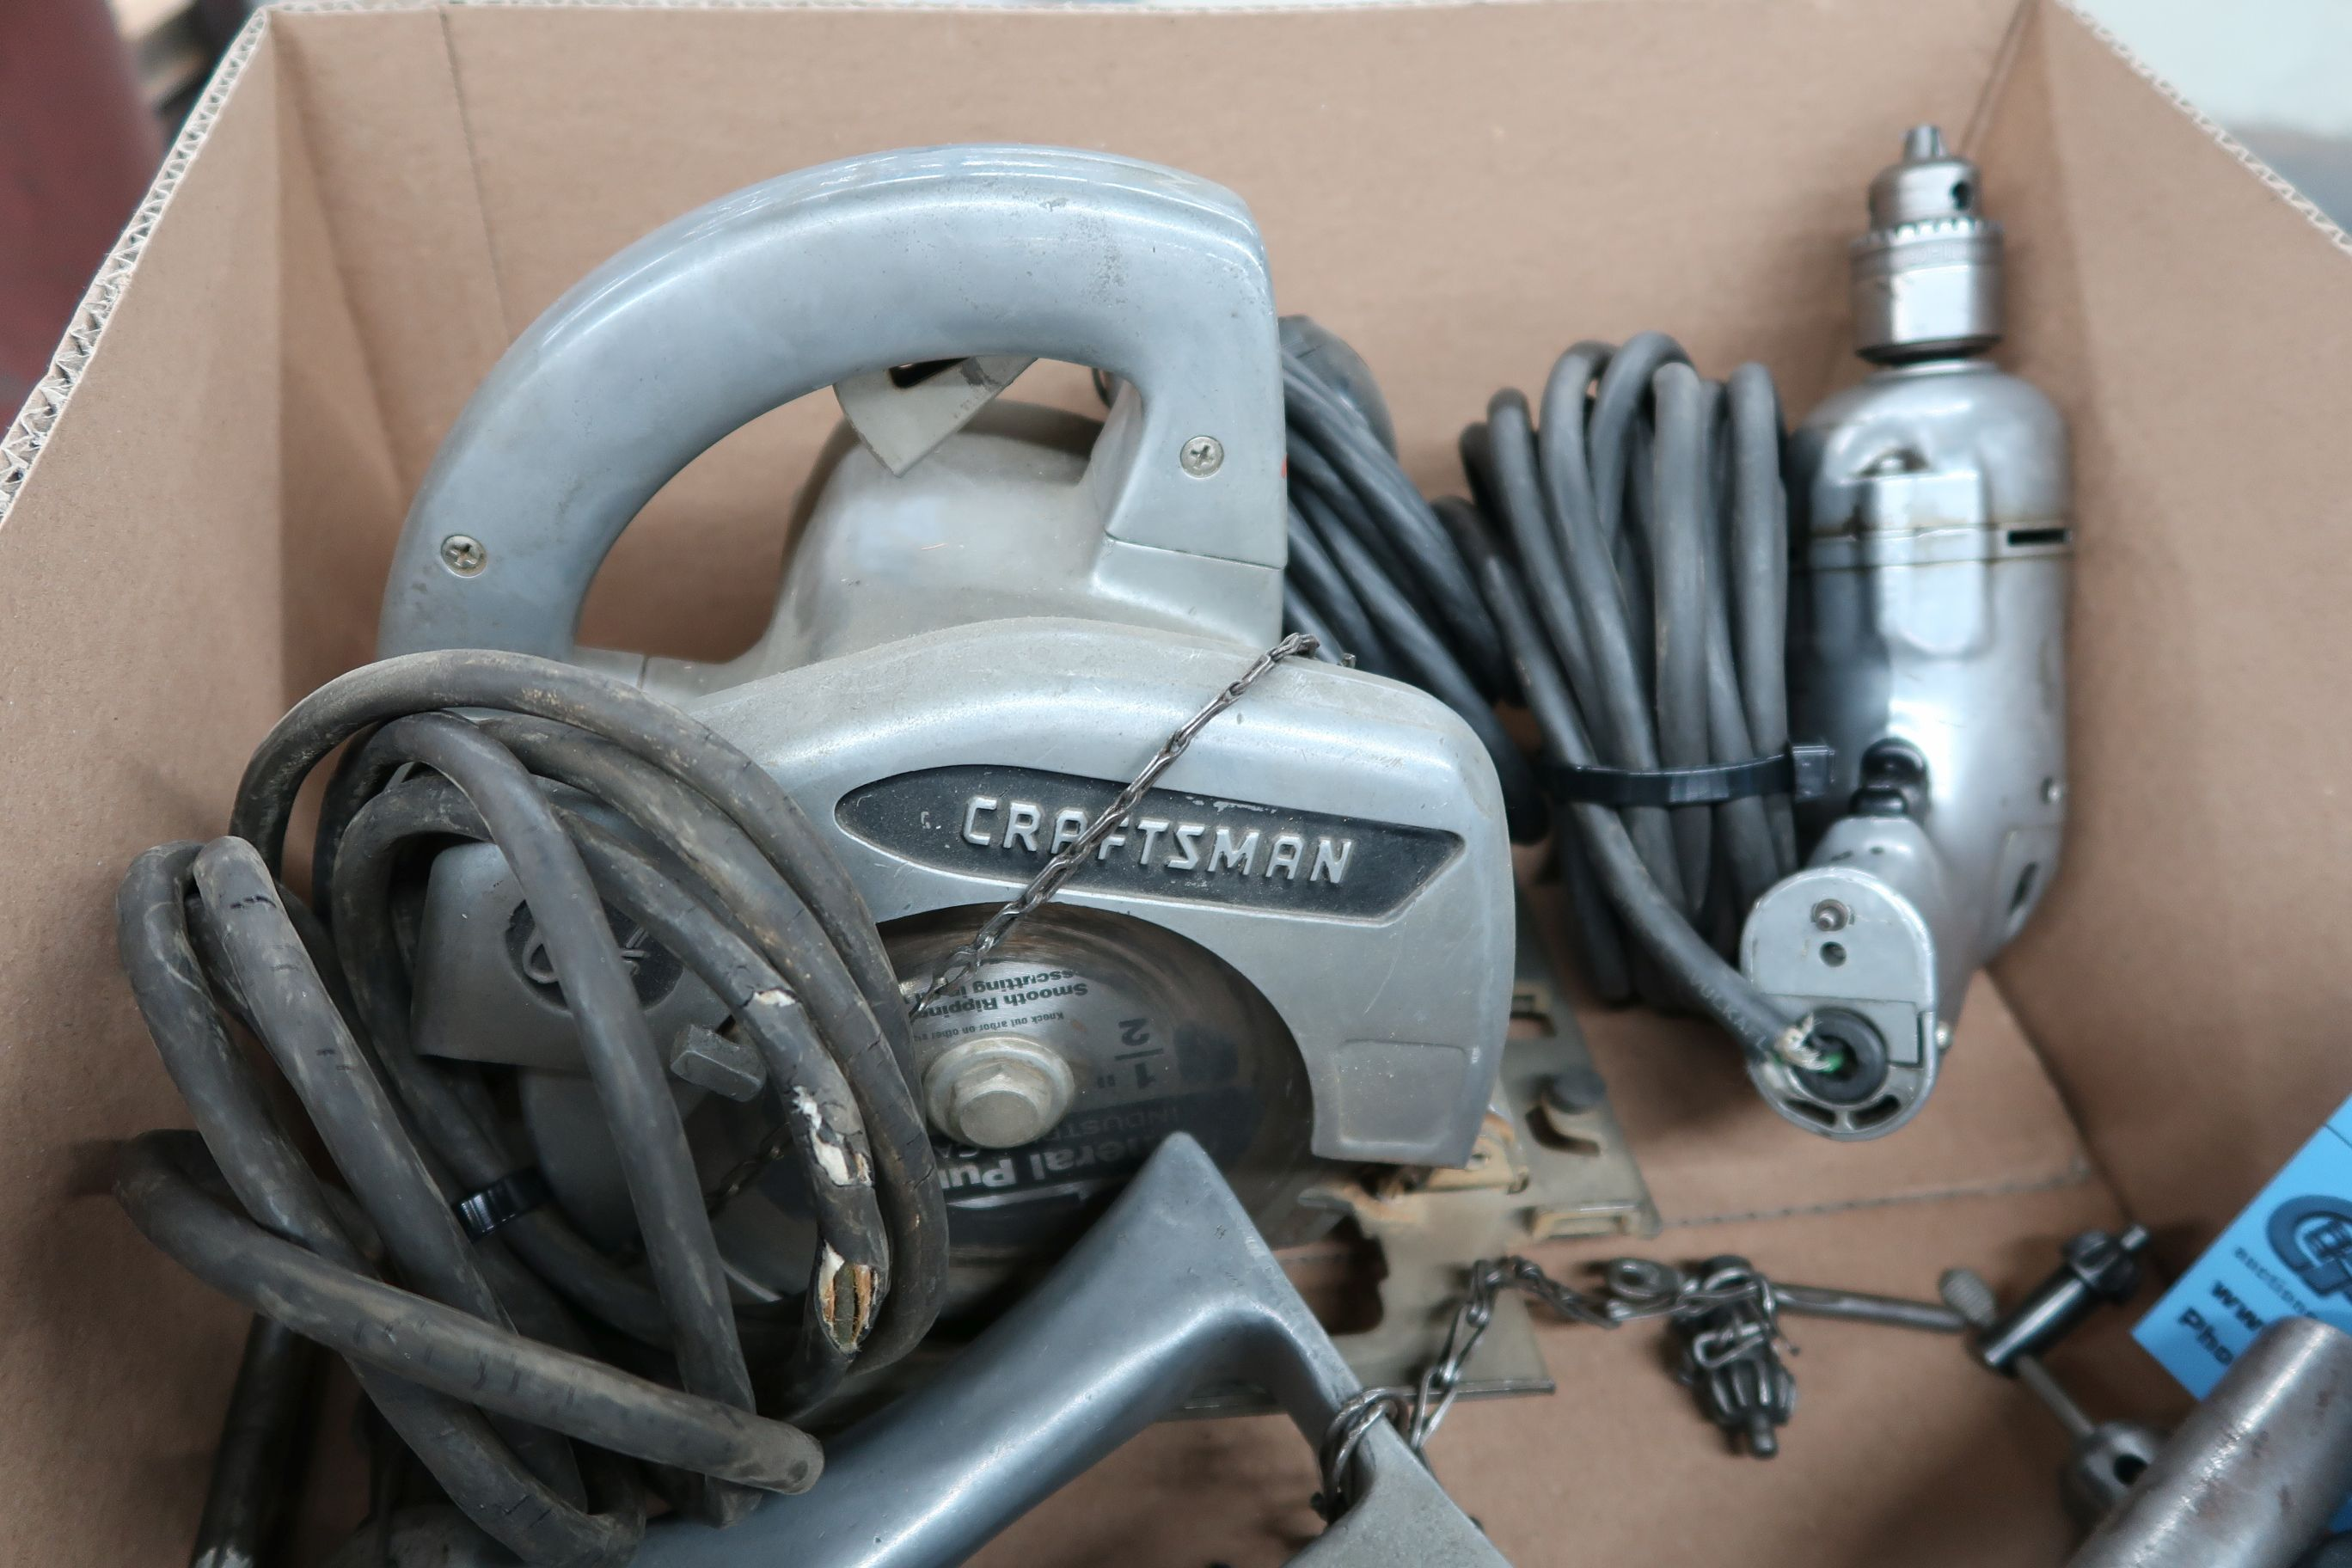 (LOT) ELECTRIC TOOLS INCLUDING (4) DRILLS & (1) CIRCULAR SAW - Image 2 of 3